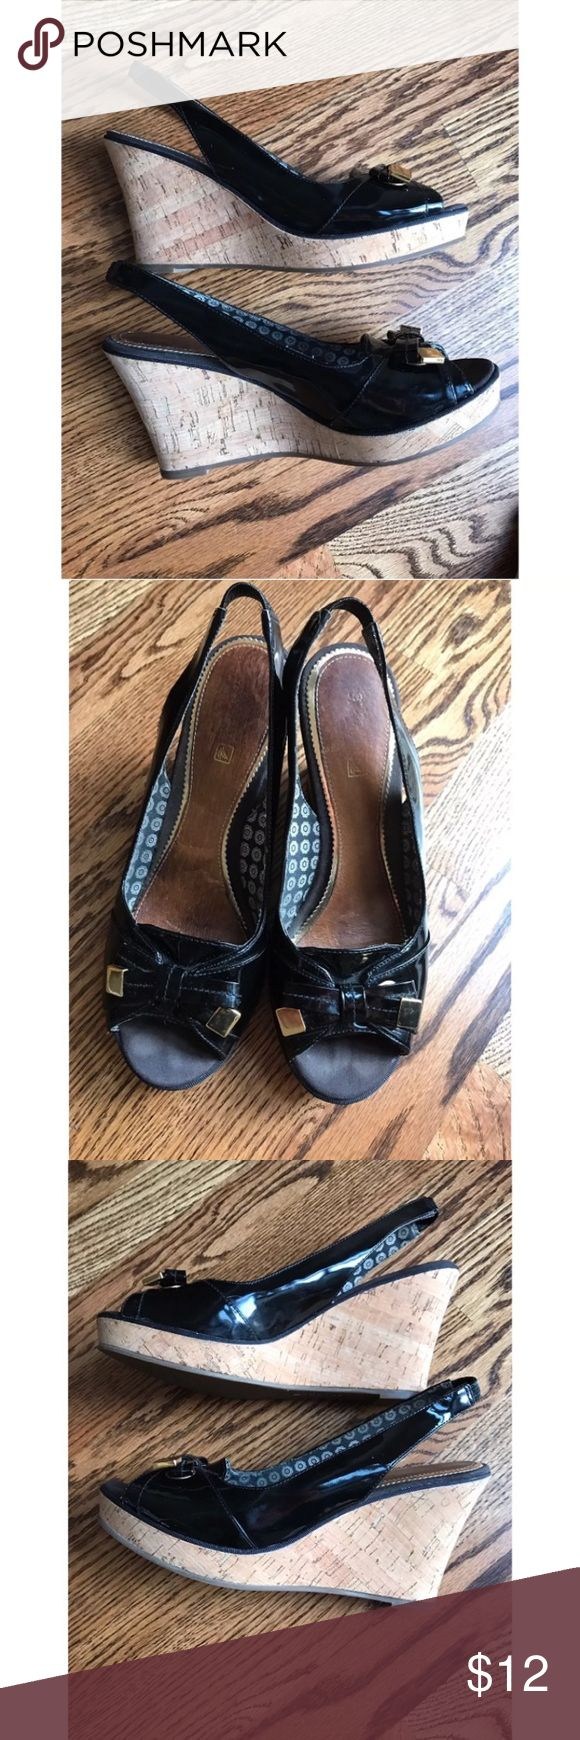 "🌷Sperry Southampton Black Patent 3.5"" Wedges Very Good Pre-loved Condition!   Retails for $ 100 Size: 7.5 M Material:Leather, Cork, Man made material Description: Cute Black Patent 3.5"" Wedges from Sperry with gold bow. Sling back & peep toe style.  Leather interior has some wear. Cork and soles are in very good shape. Sperry Shoes Wedges"